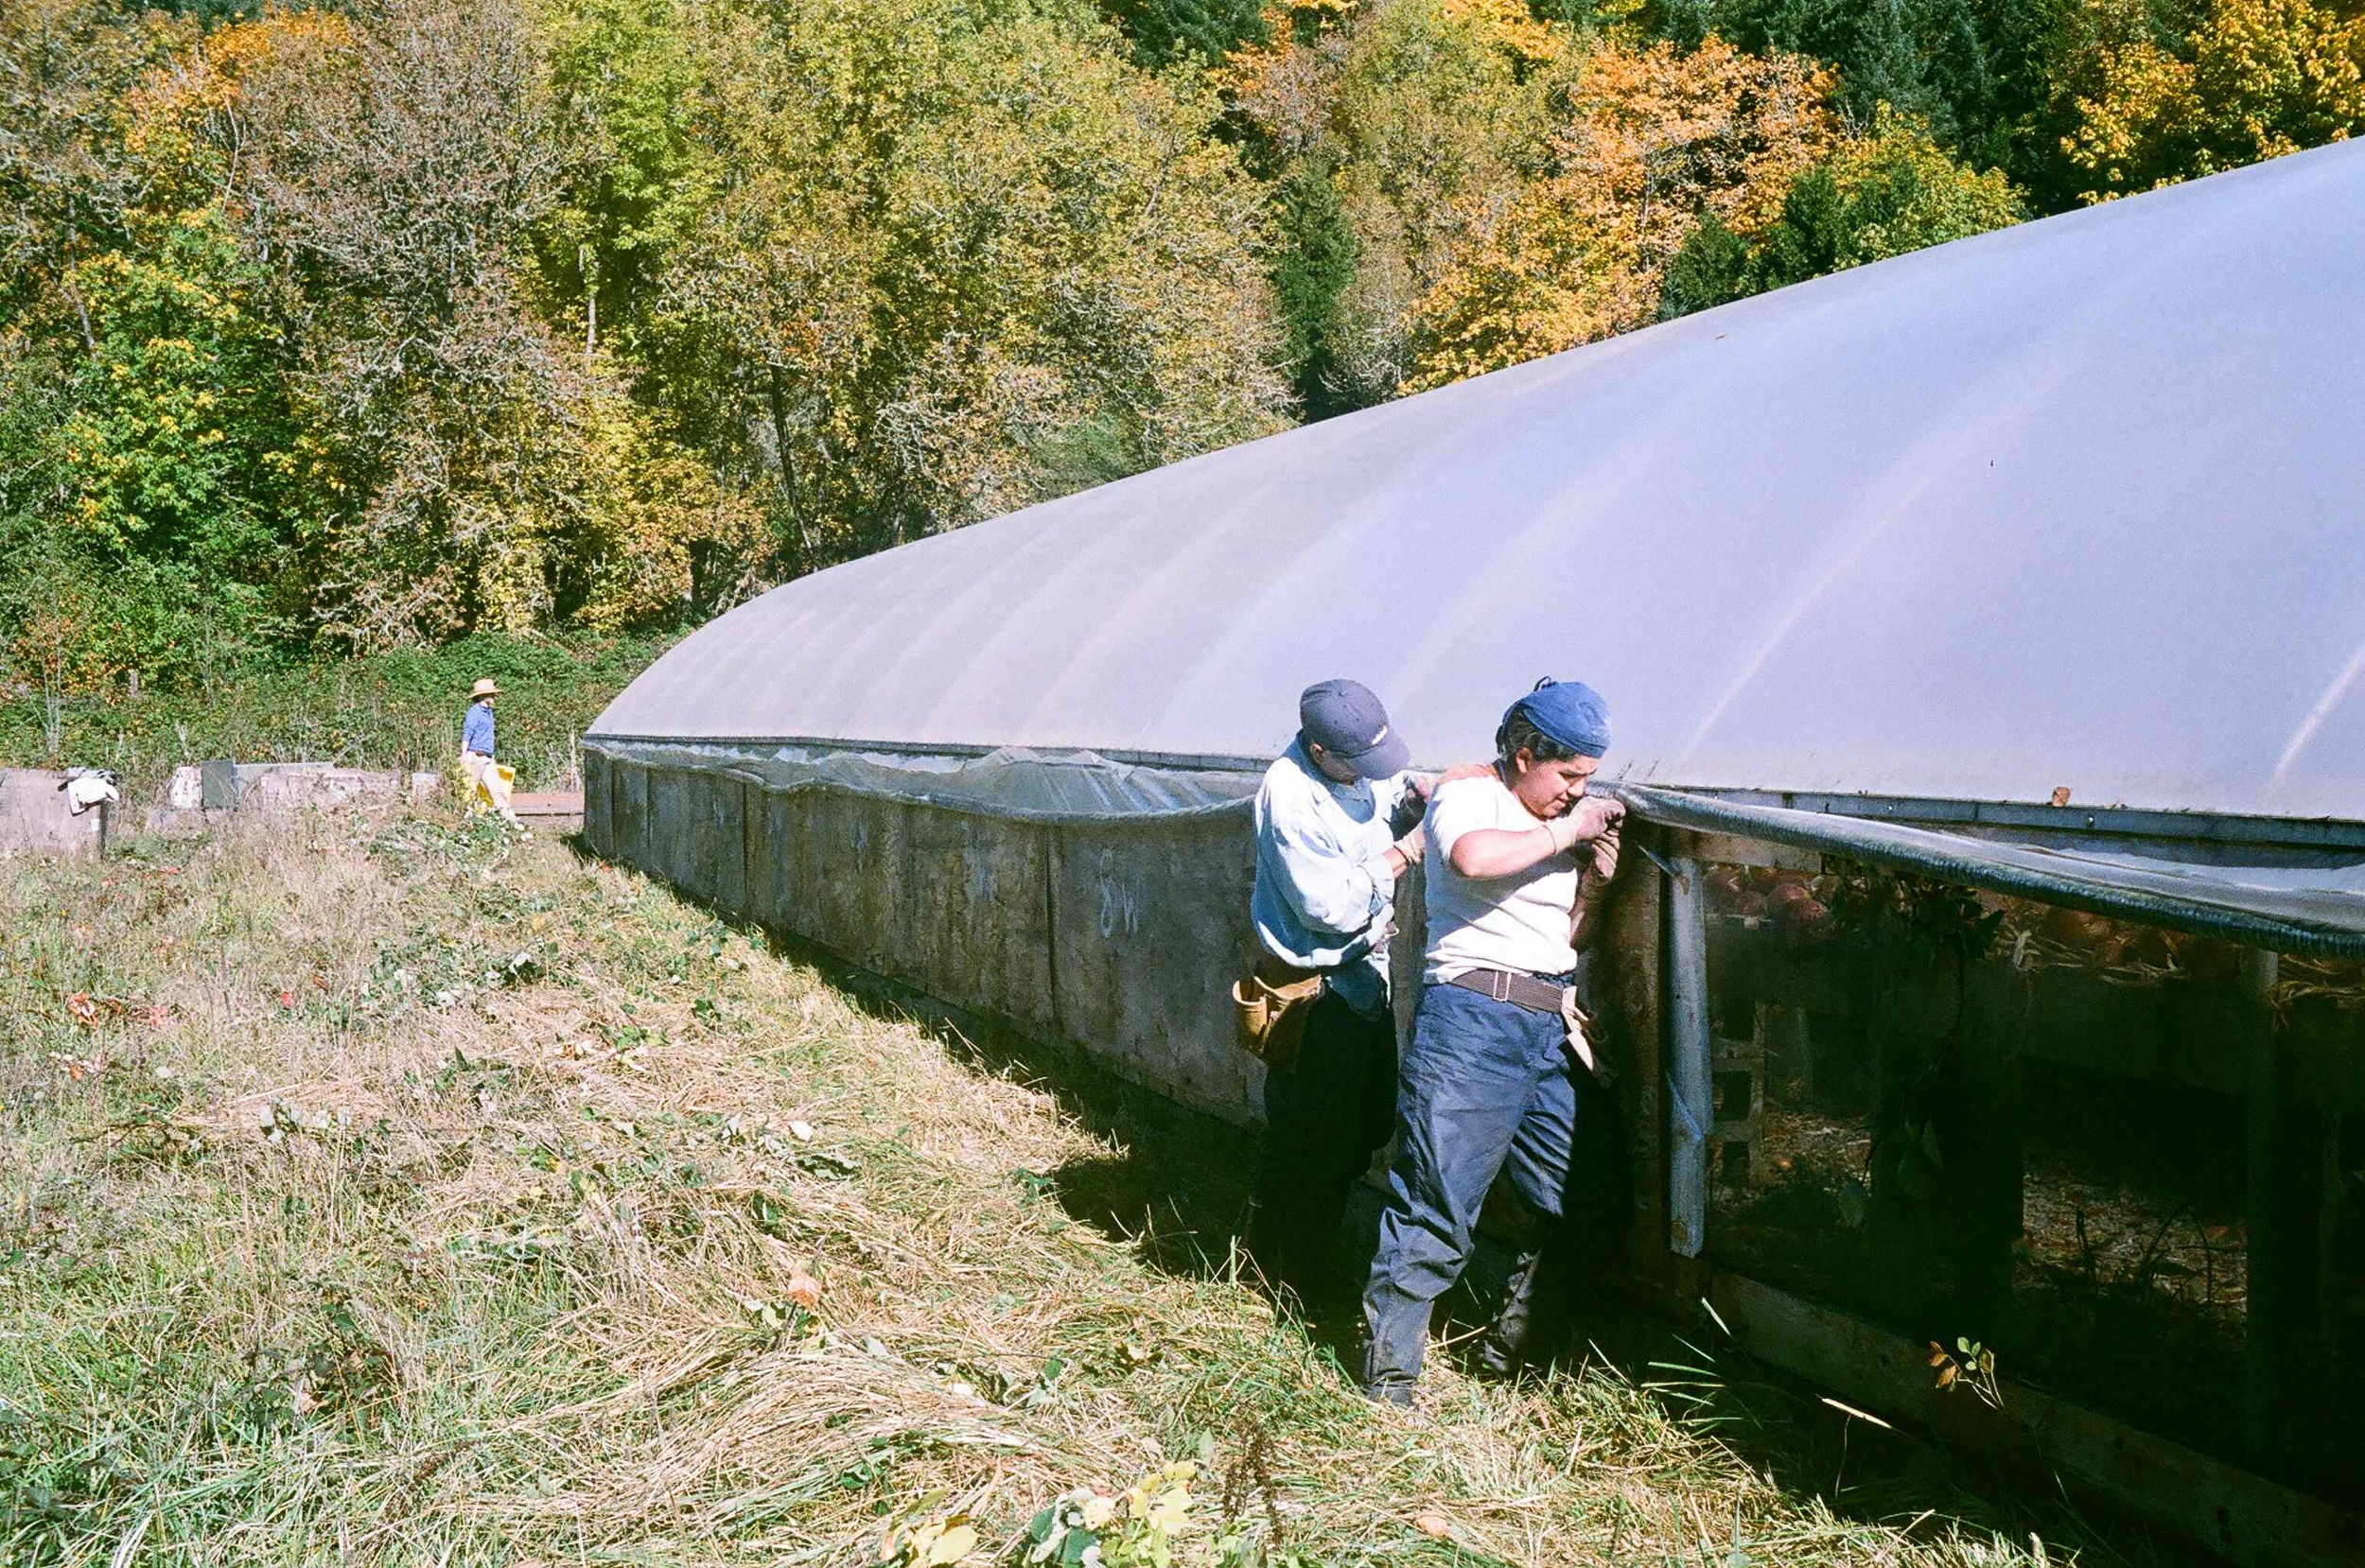 Our greenhouse is a major source of heat loss. We put up insulated walls every Fall. The walls are removed in the late spring to allow for better ventilation.